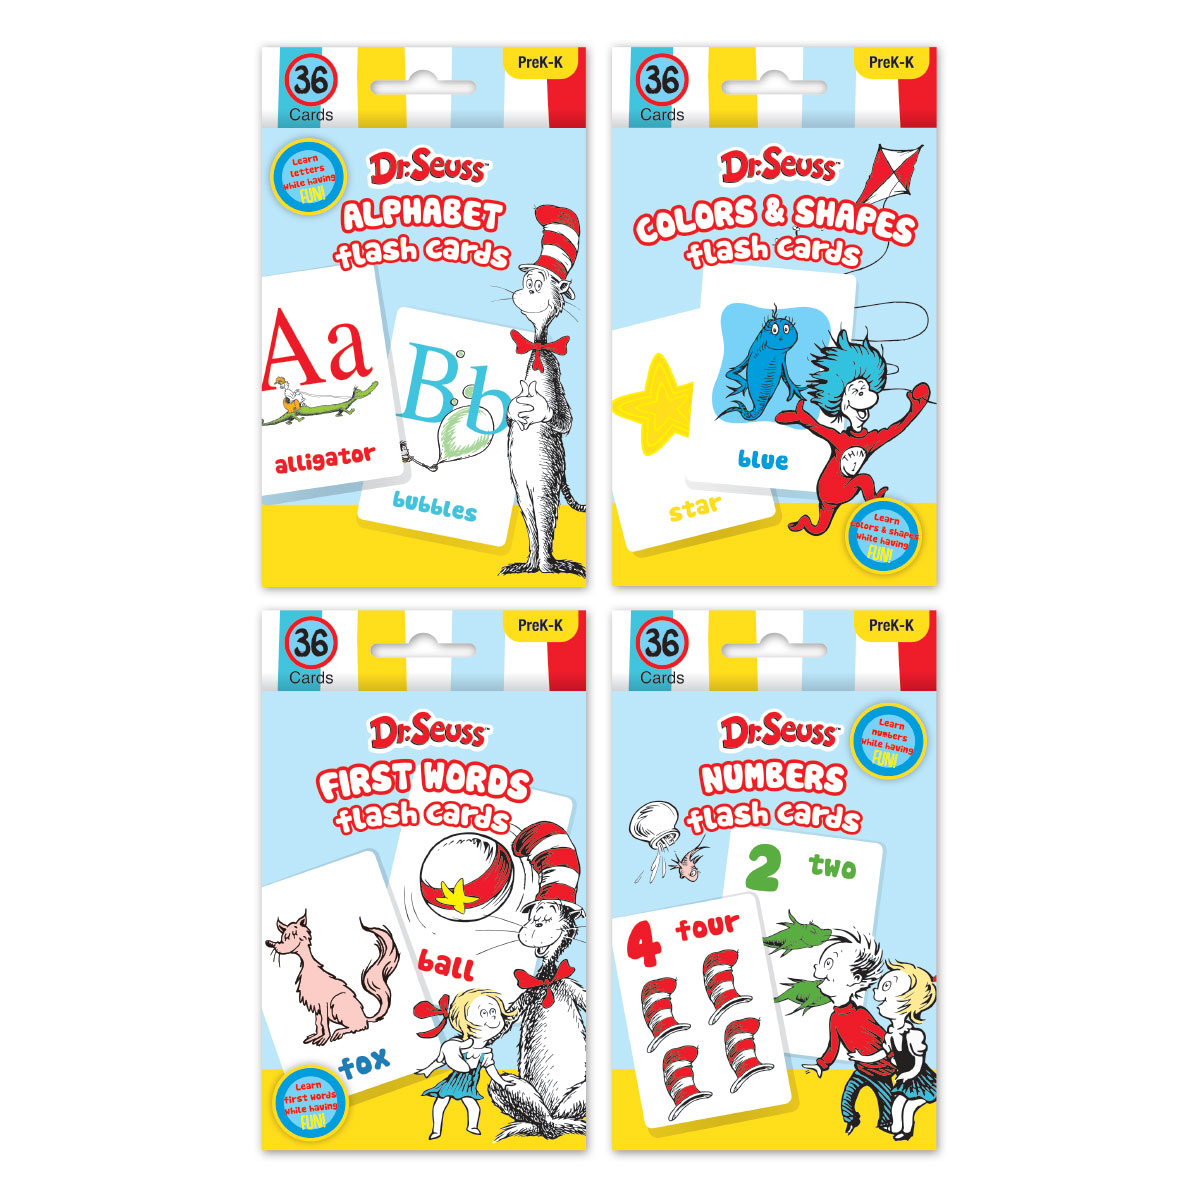 Dr. Seuss Flash Cards Assortment